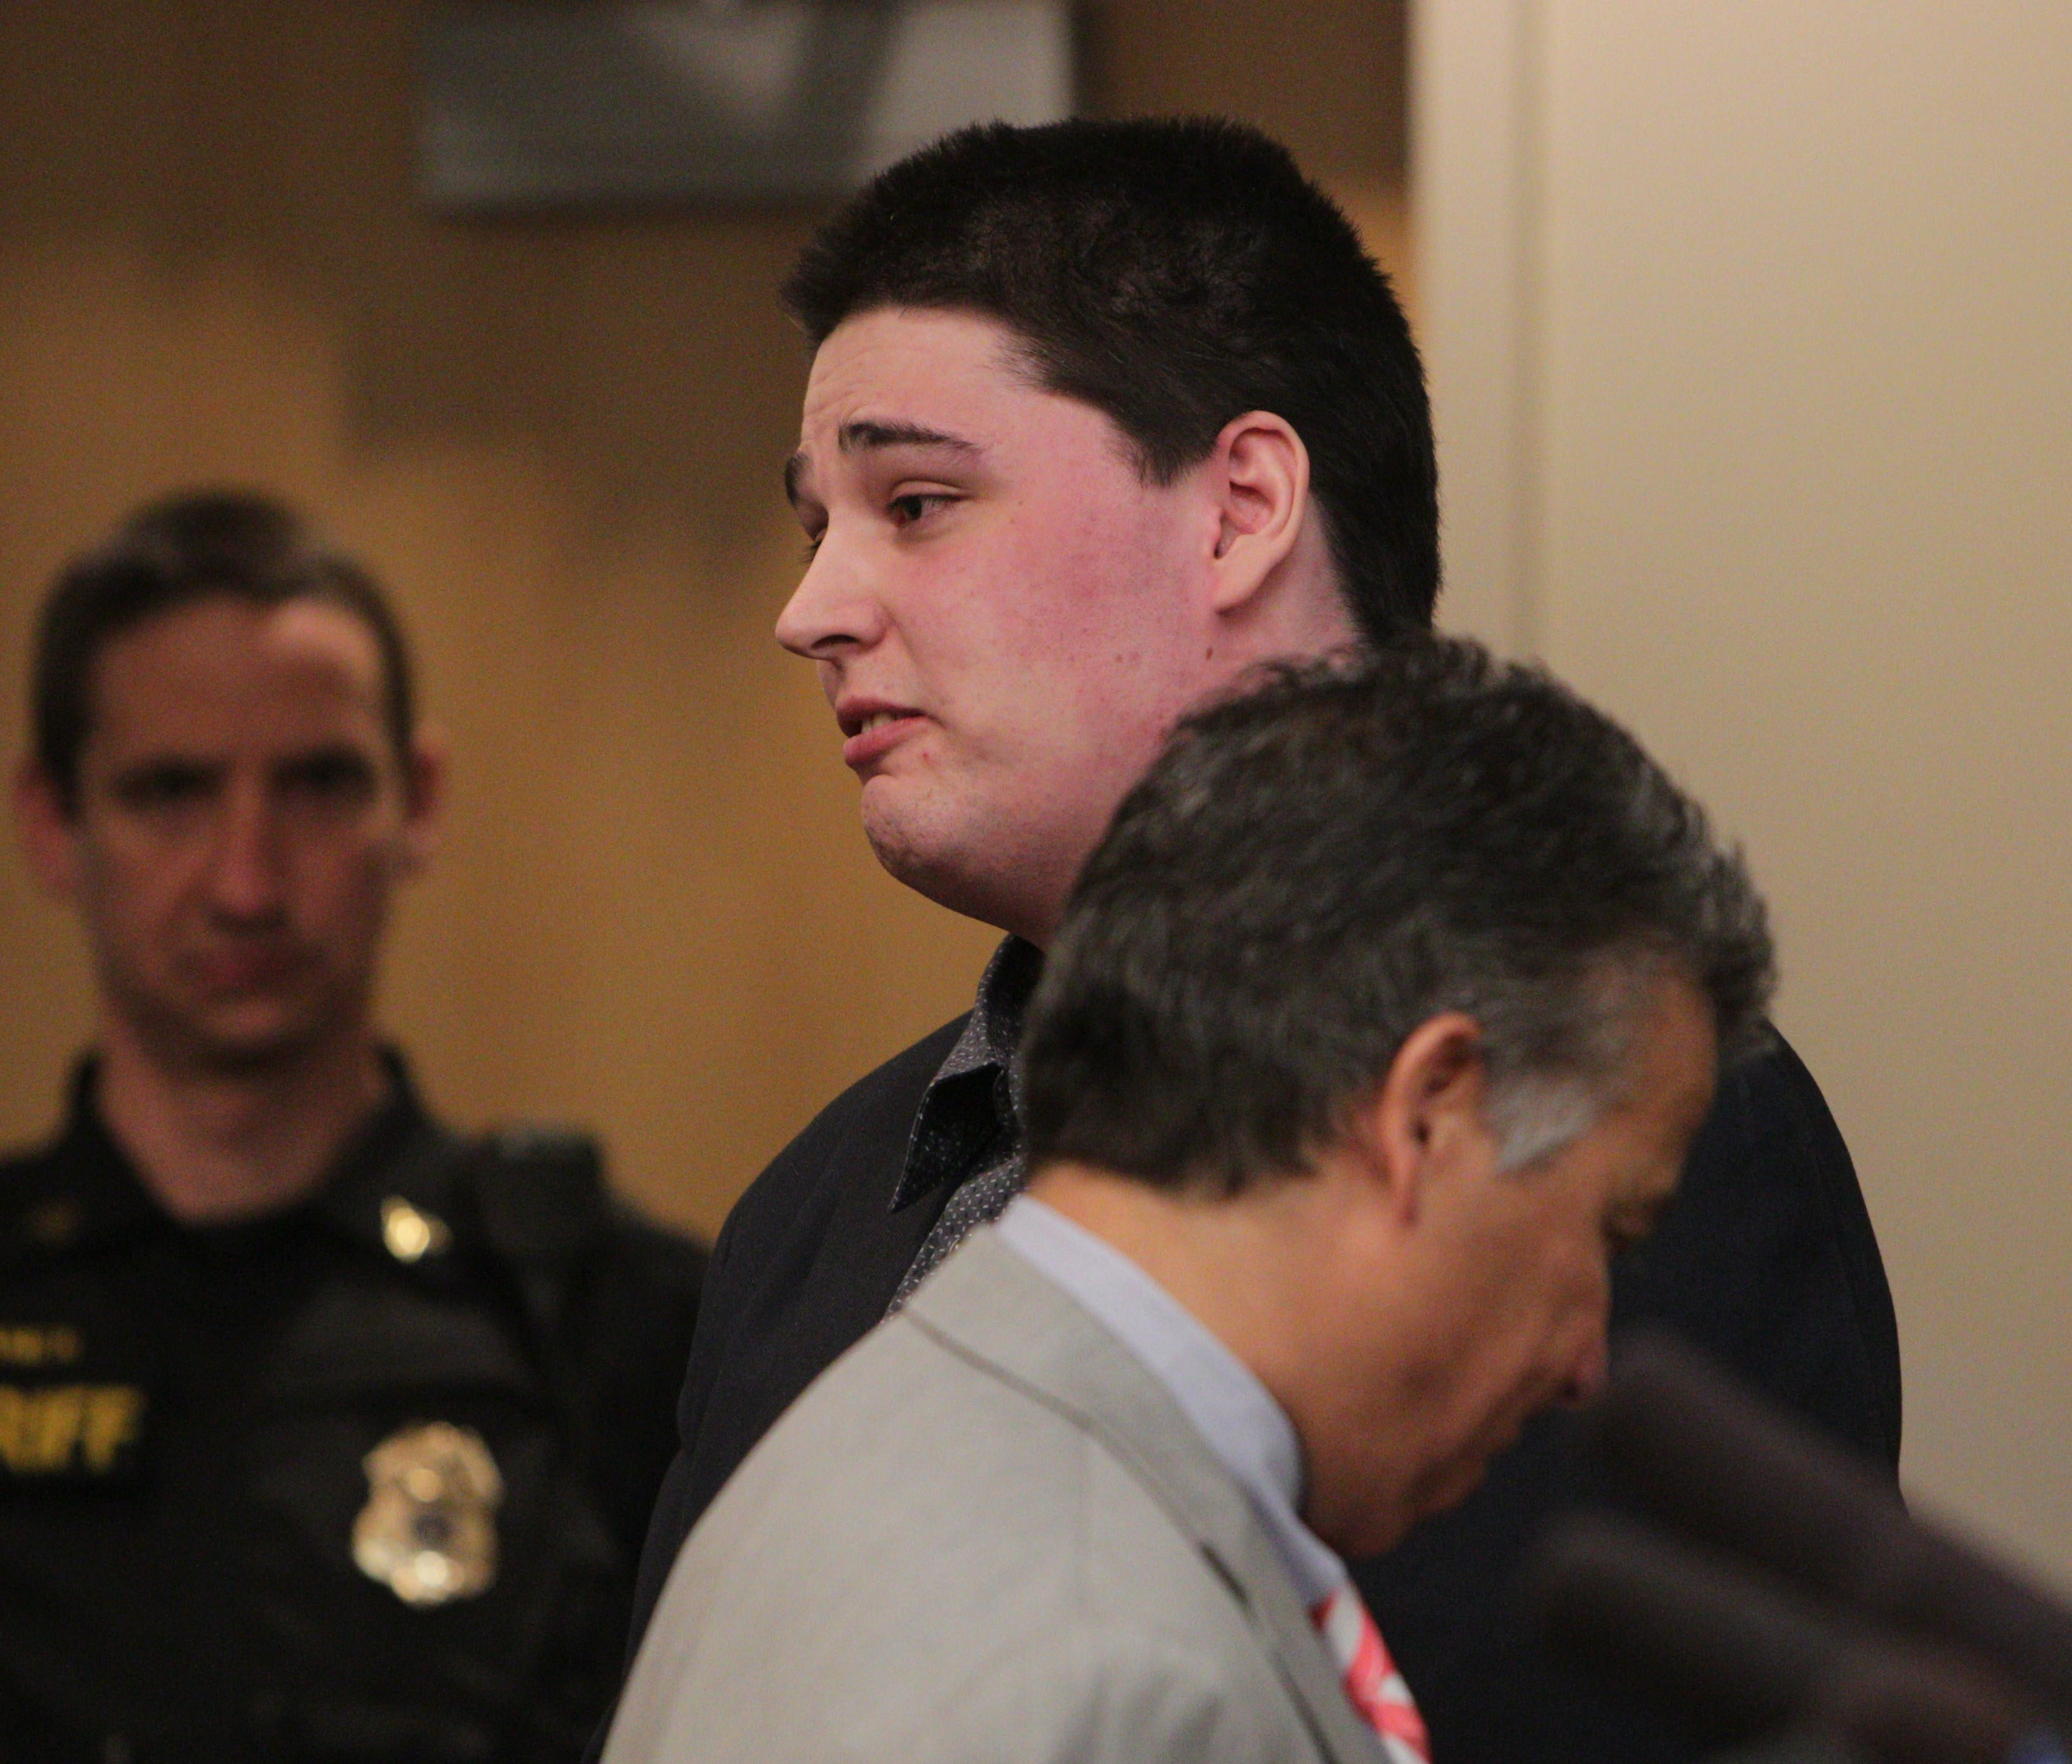 Cody Testerman, 23, addresses his family in court after he was sentenced to 25 years for killing his half brother Jesse Seneca in 2012. In the foreground is his lawyer Andrew LoTempio.